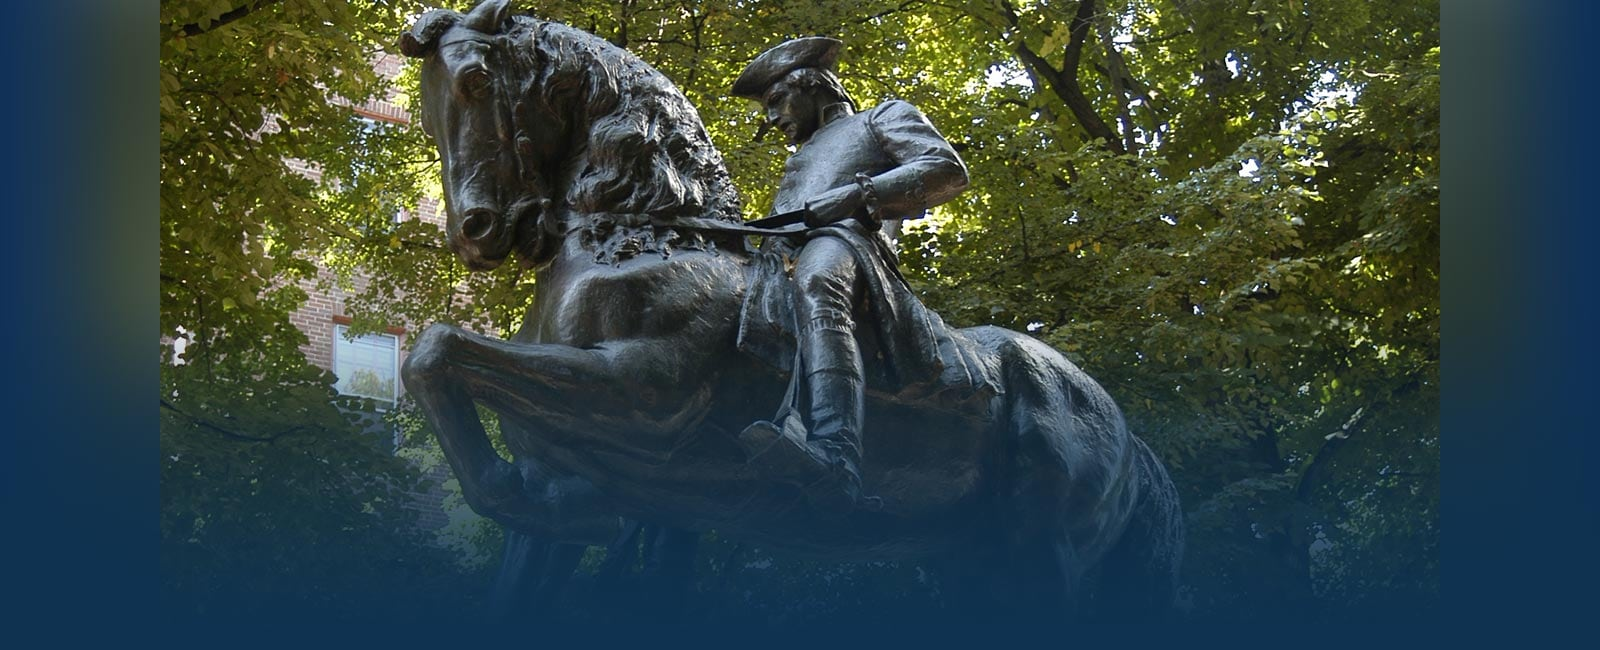 Paul Revere statue in Boston, MA